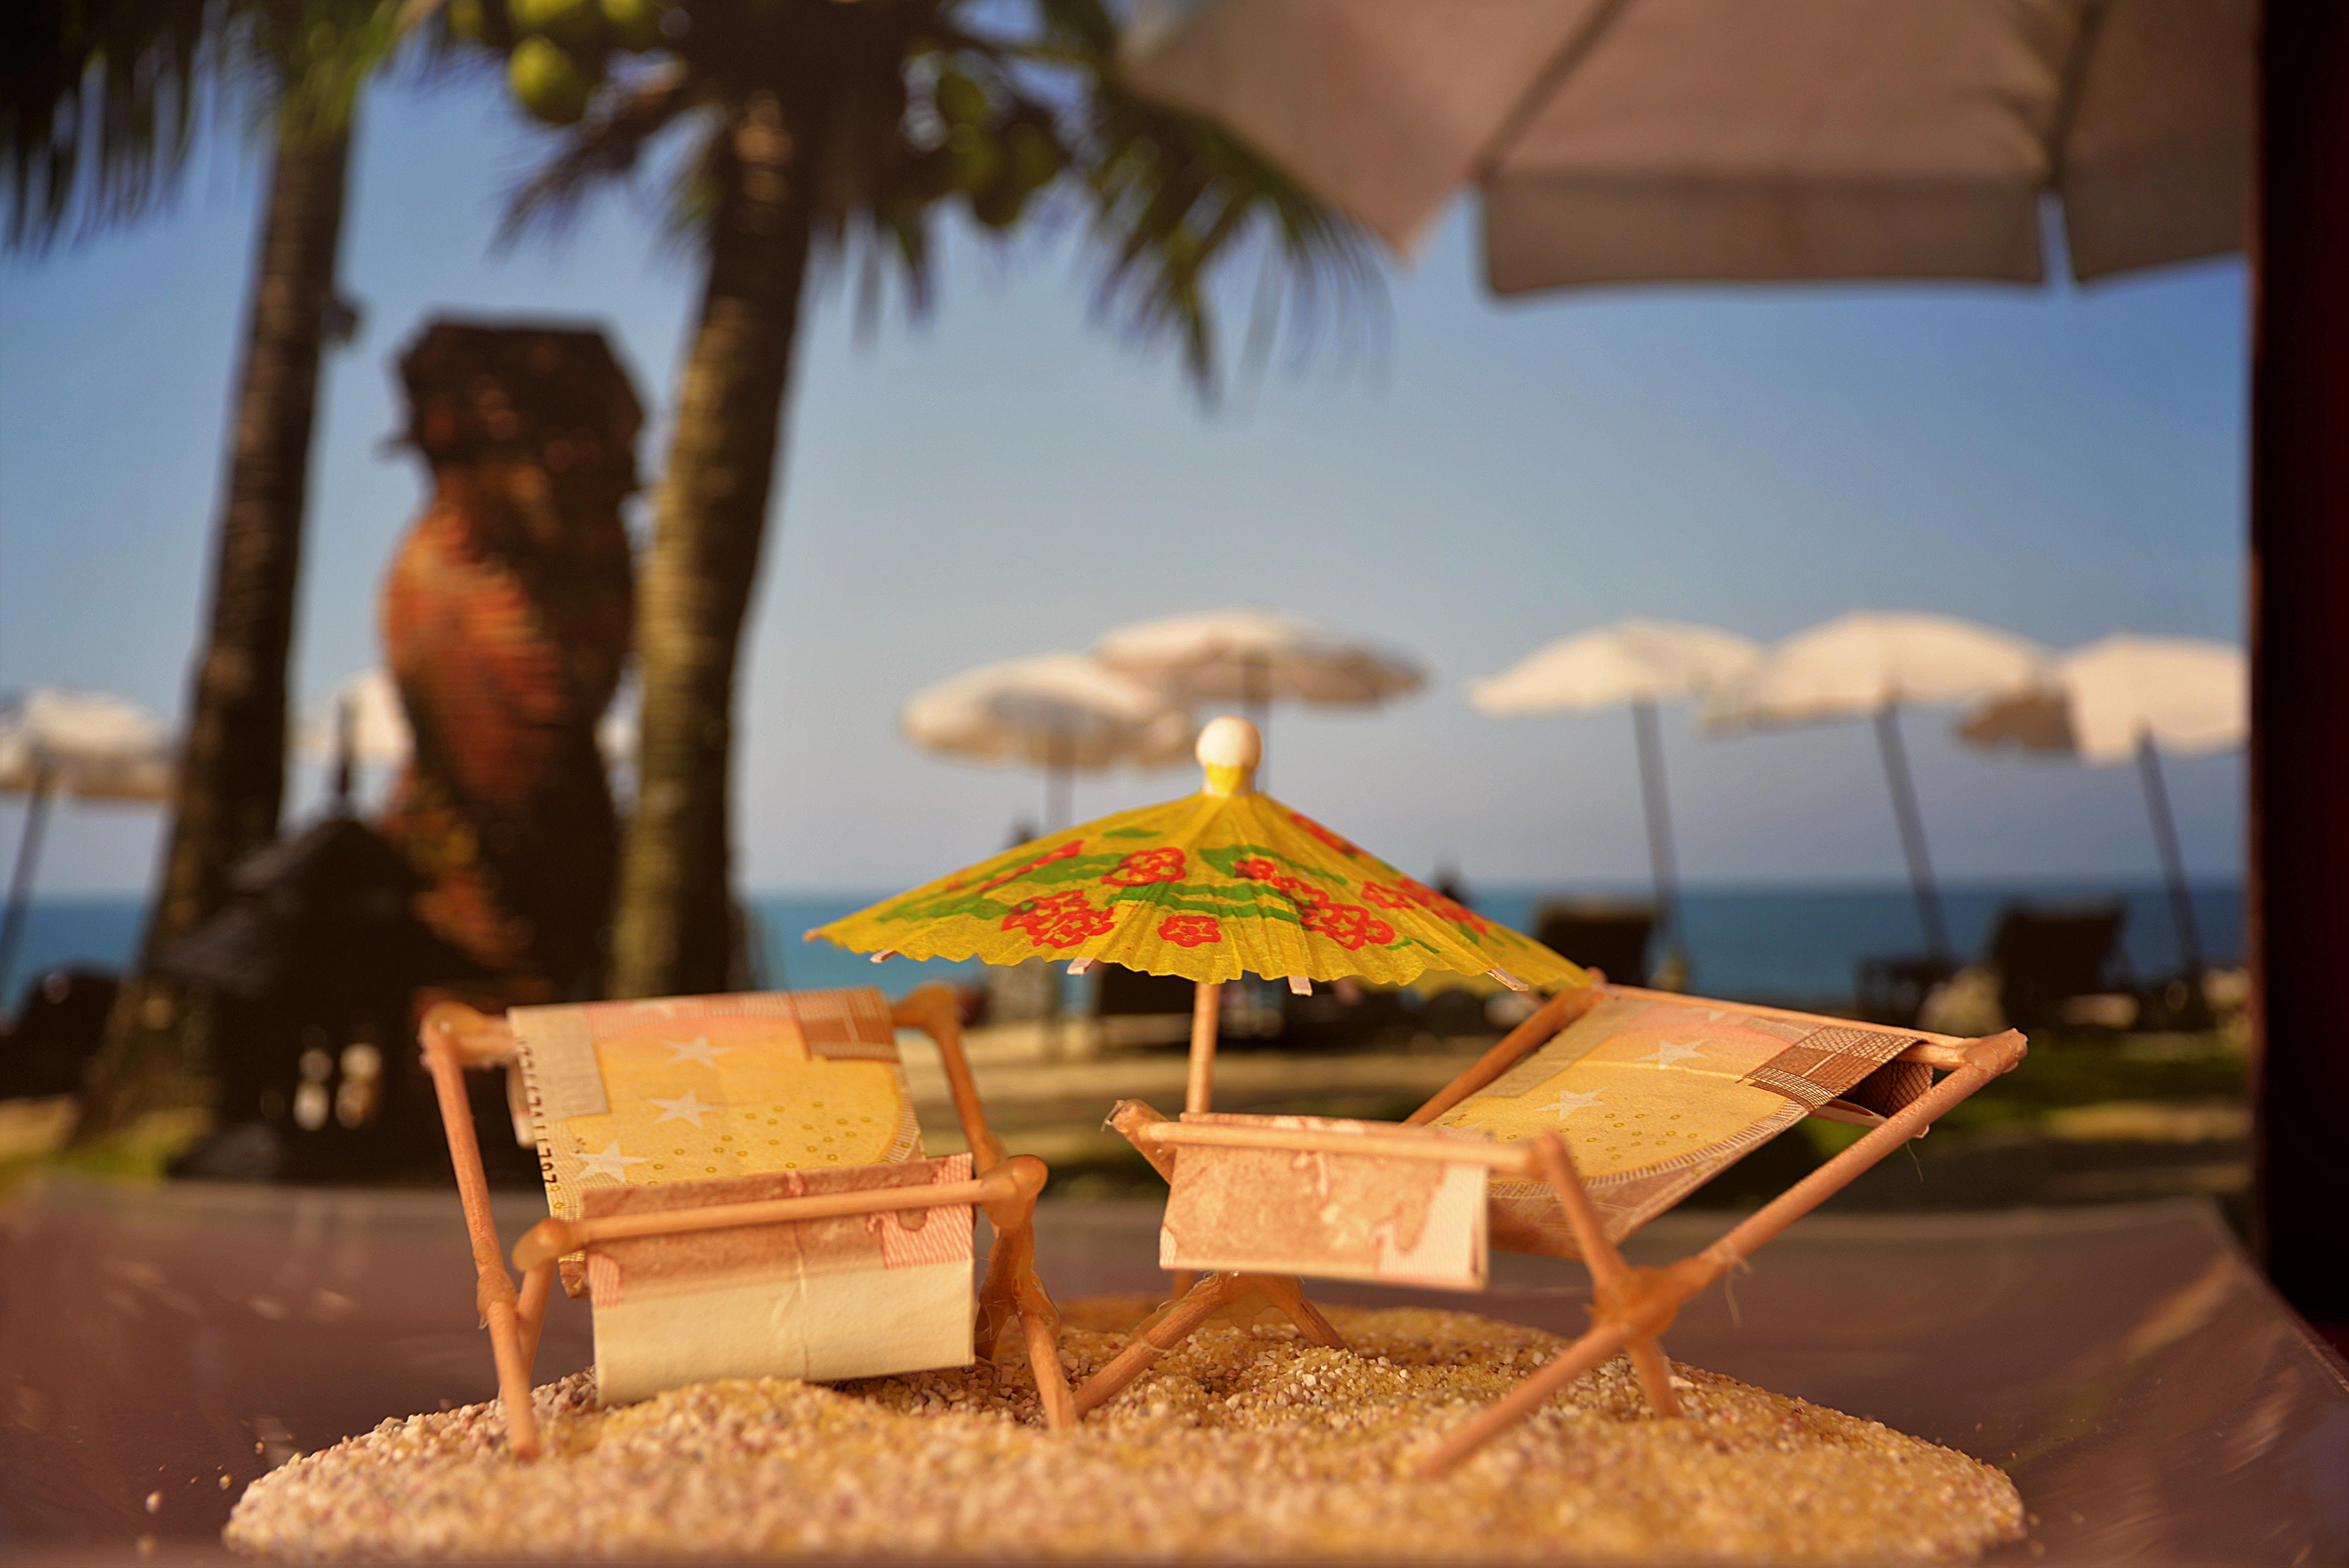 Miniature Outdoor Beach Lounge and Parasol